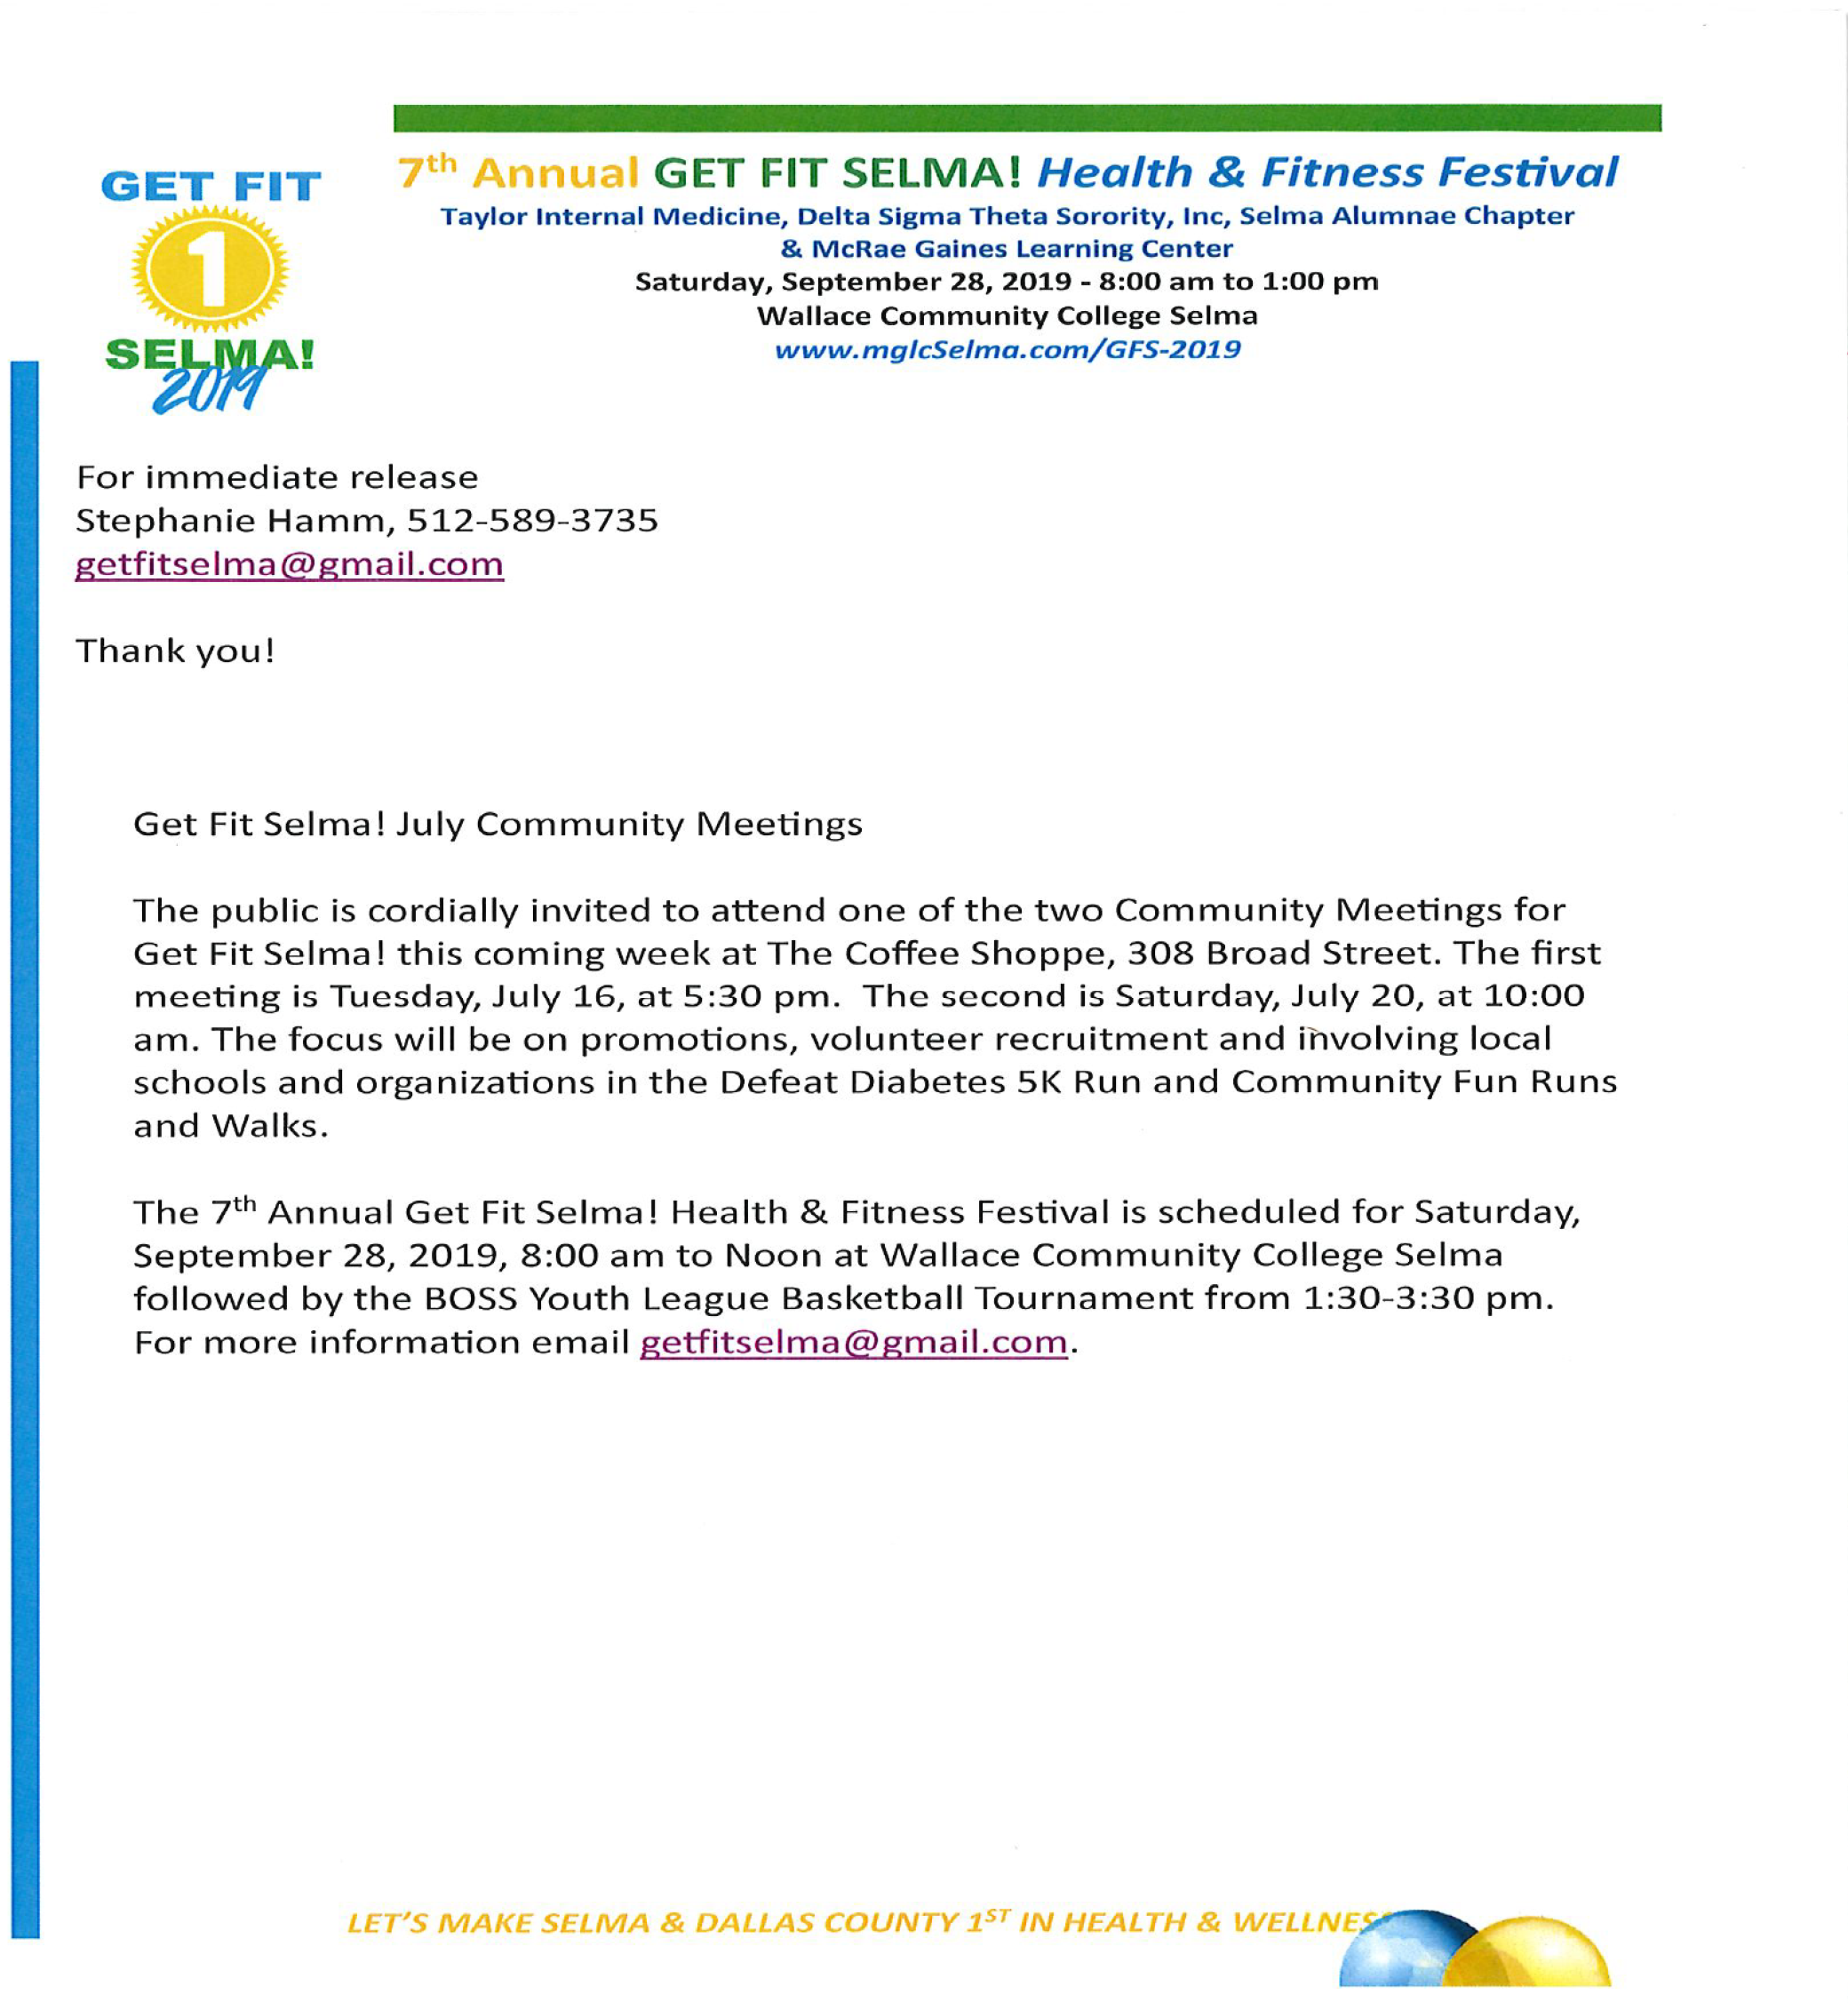 Get Fit Selma July Community Meeting